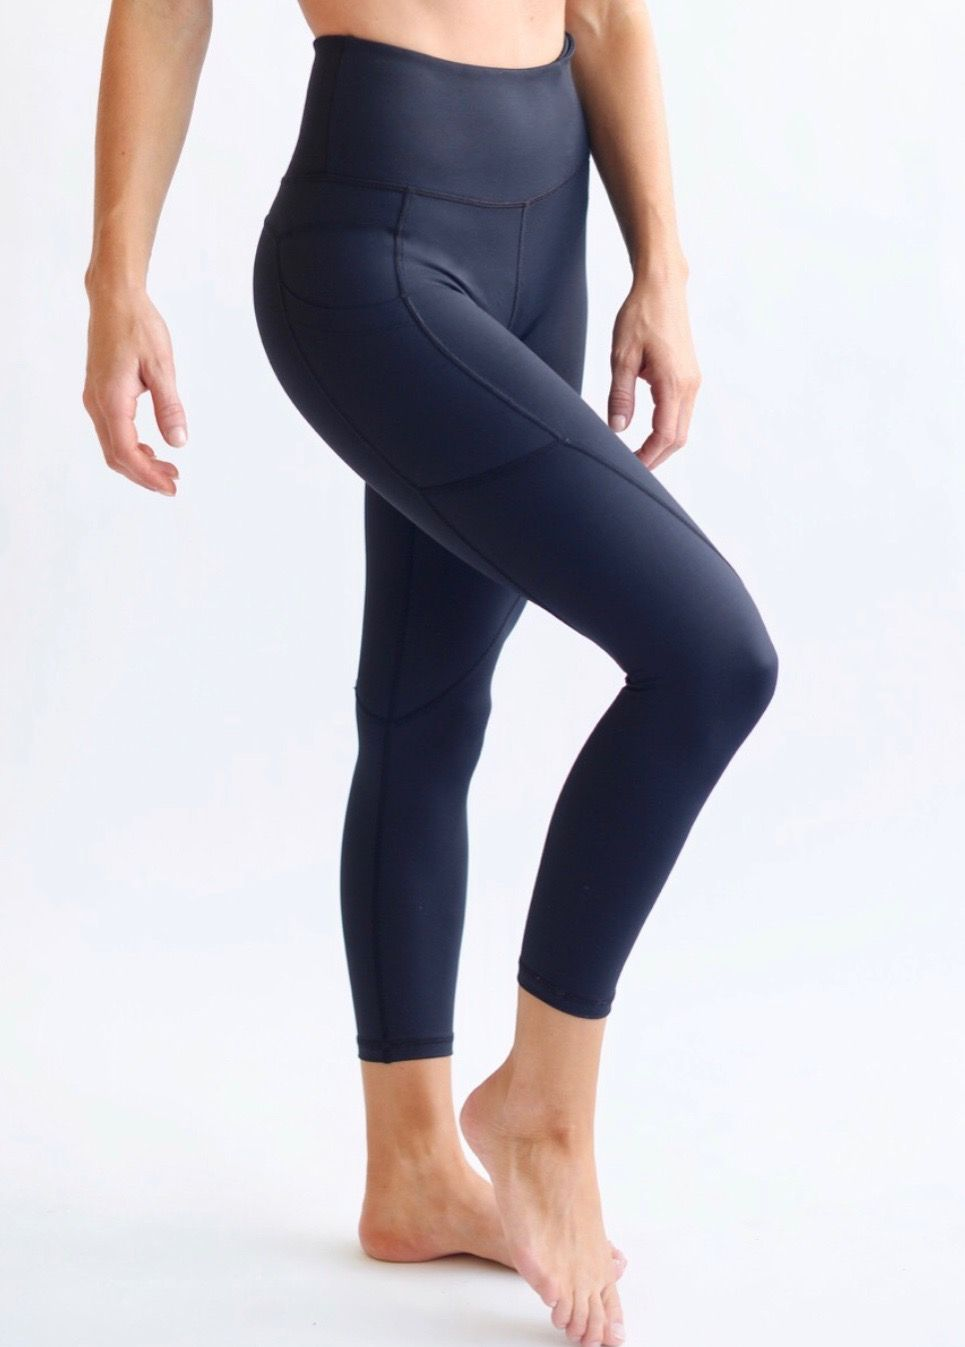 ️Restocked | Workout clothes, Popular leggings